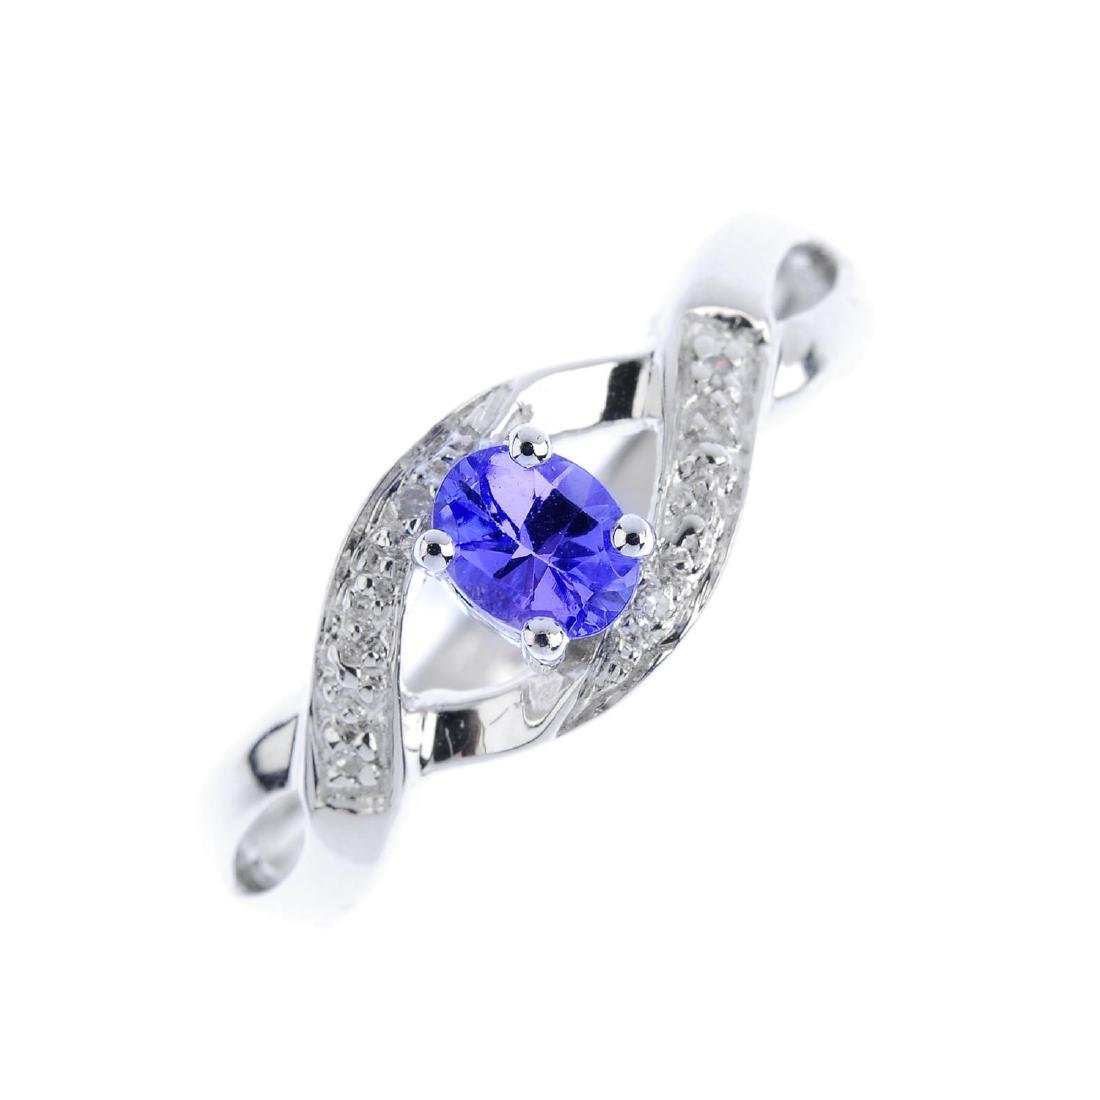 A 9ct gold tanzanite and diamond crossover ring. The